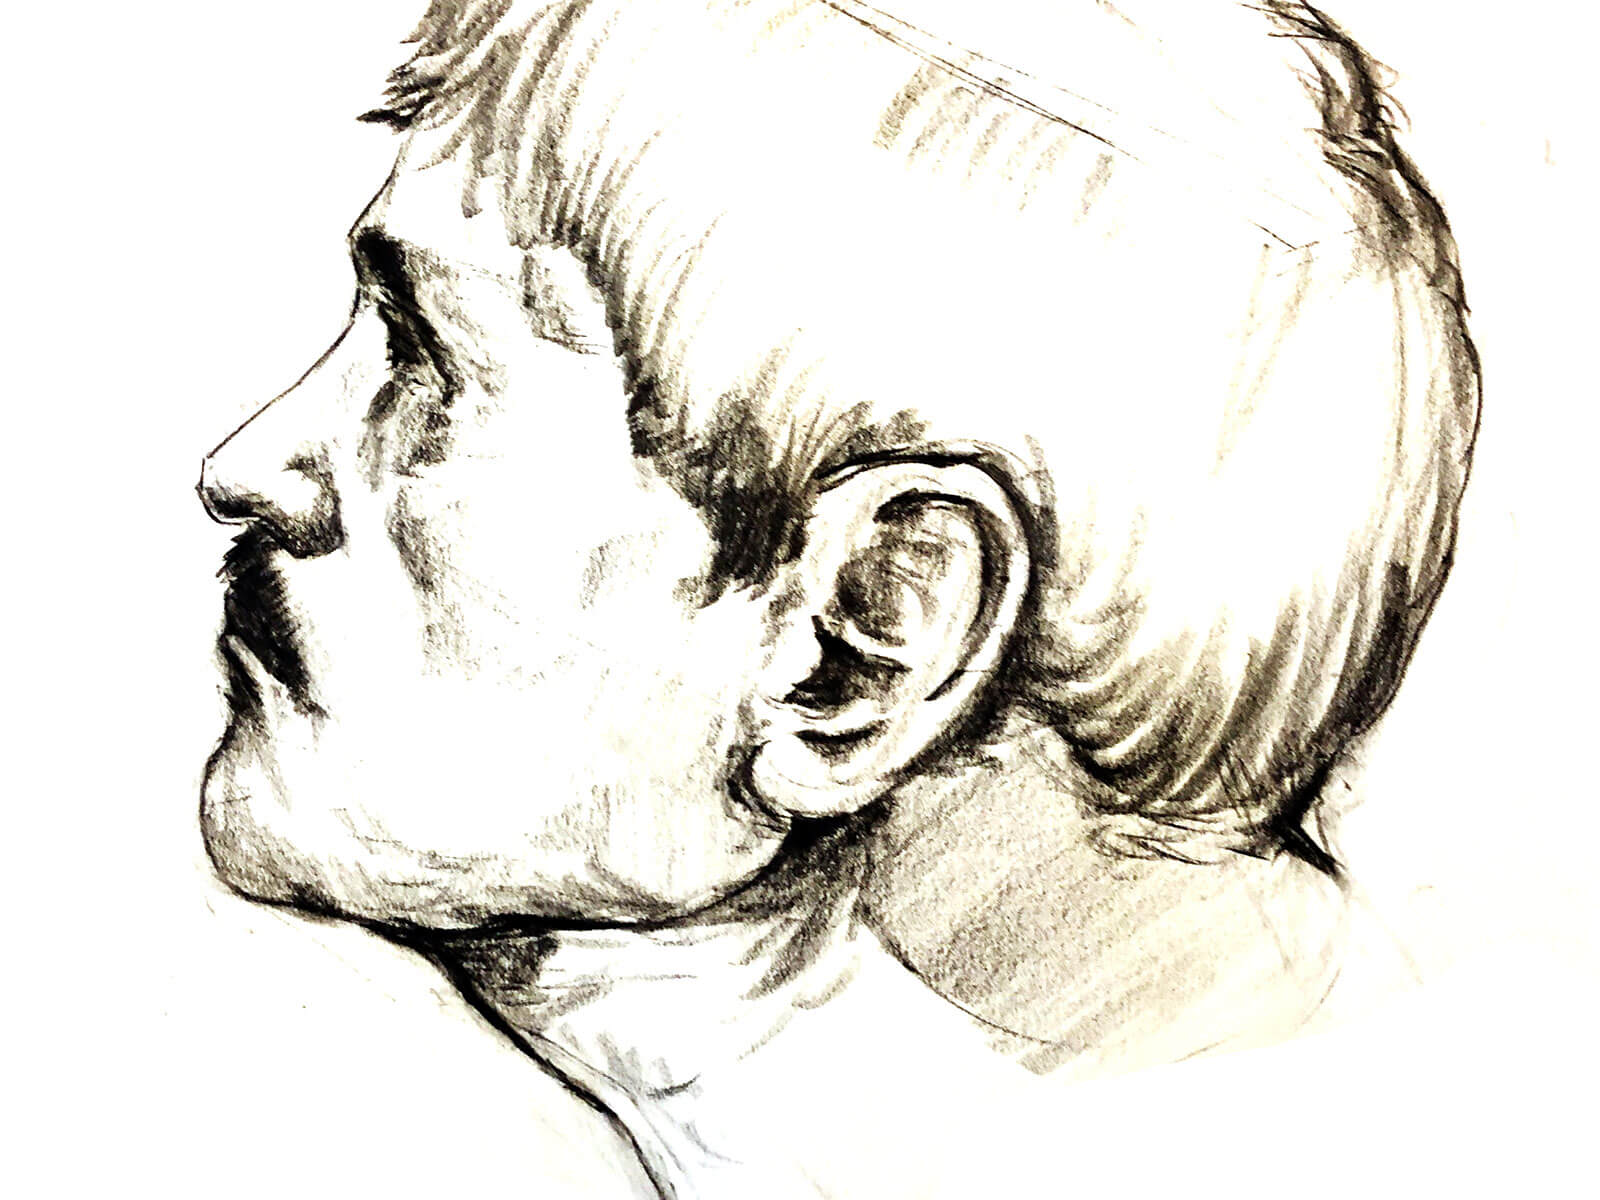 Black-and-white sketch of a mustached man looking up and to the left, away from the viewer.